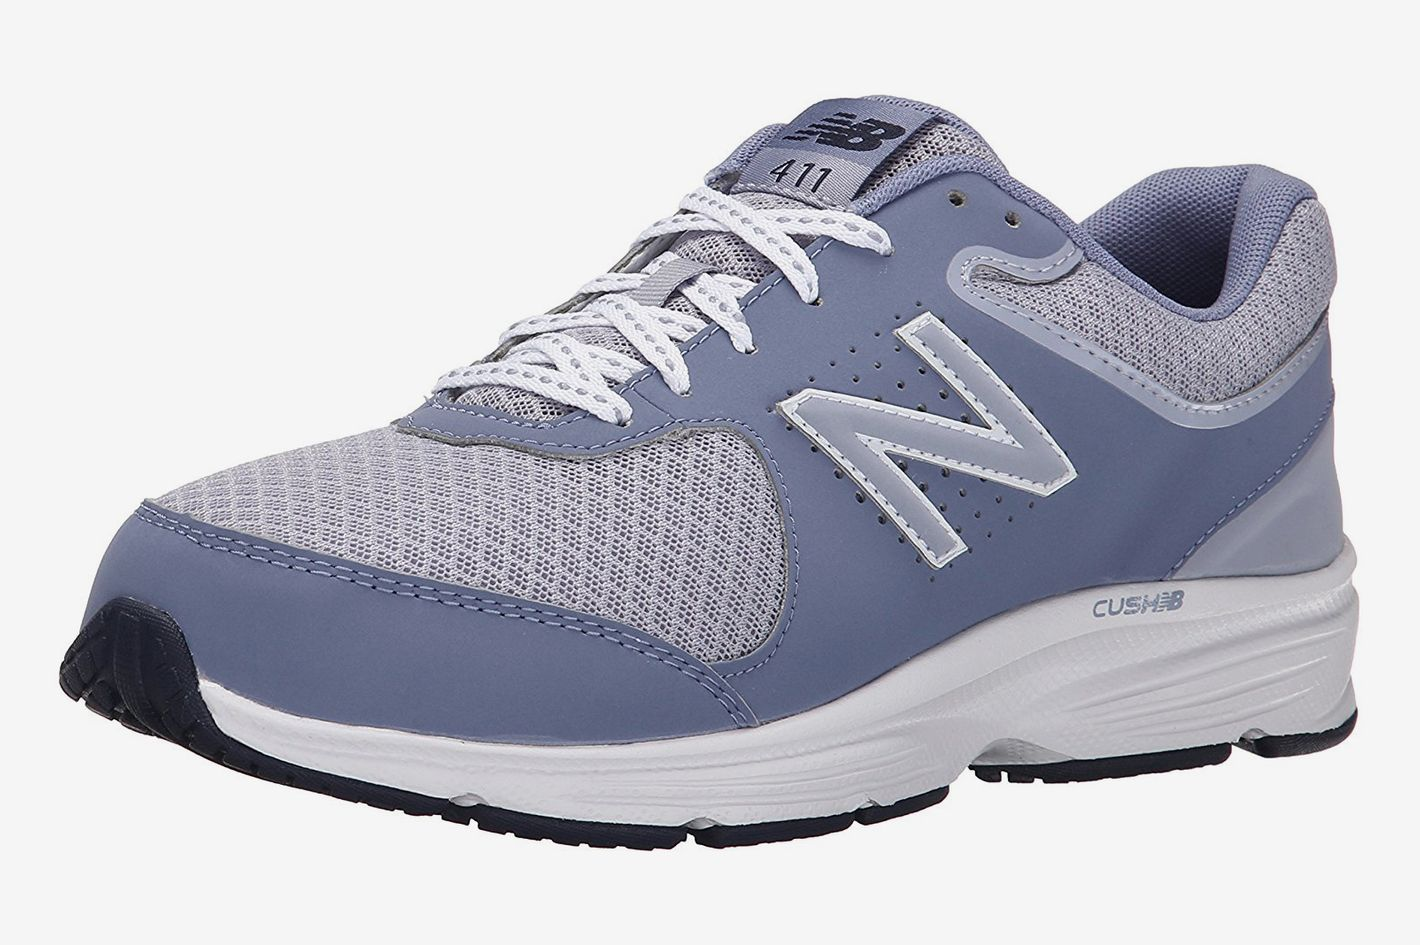 sale retailer b5756 43145 New Balance Women s Walking Shoes